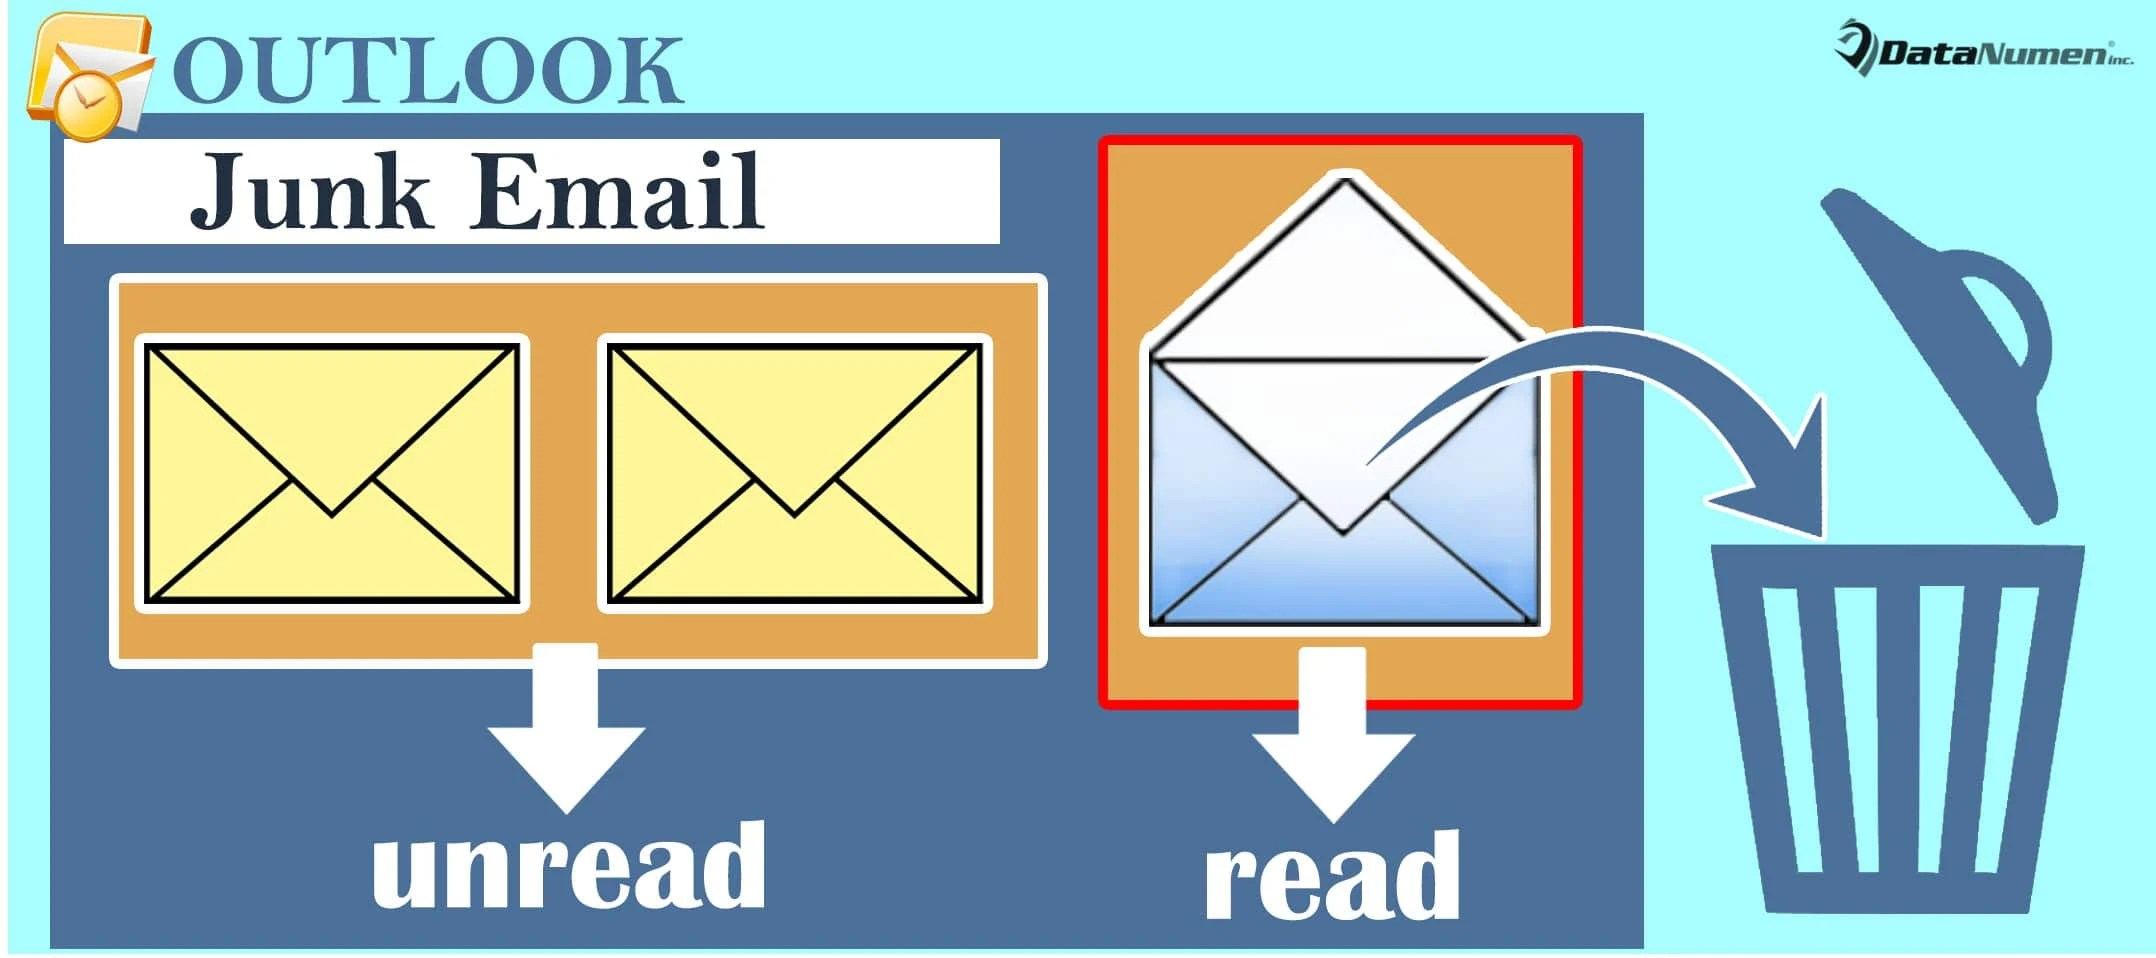 Auto Delete a Junk Email after Marking It as Read in Your Outlook